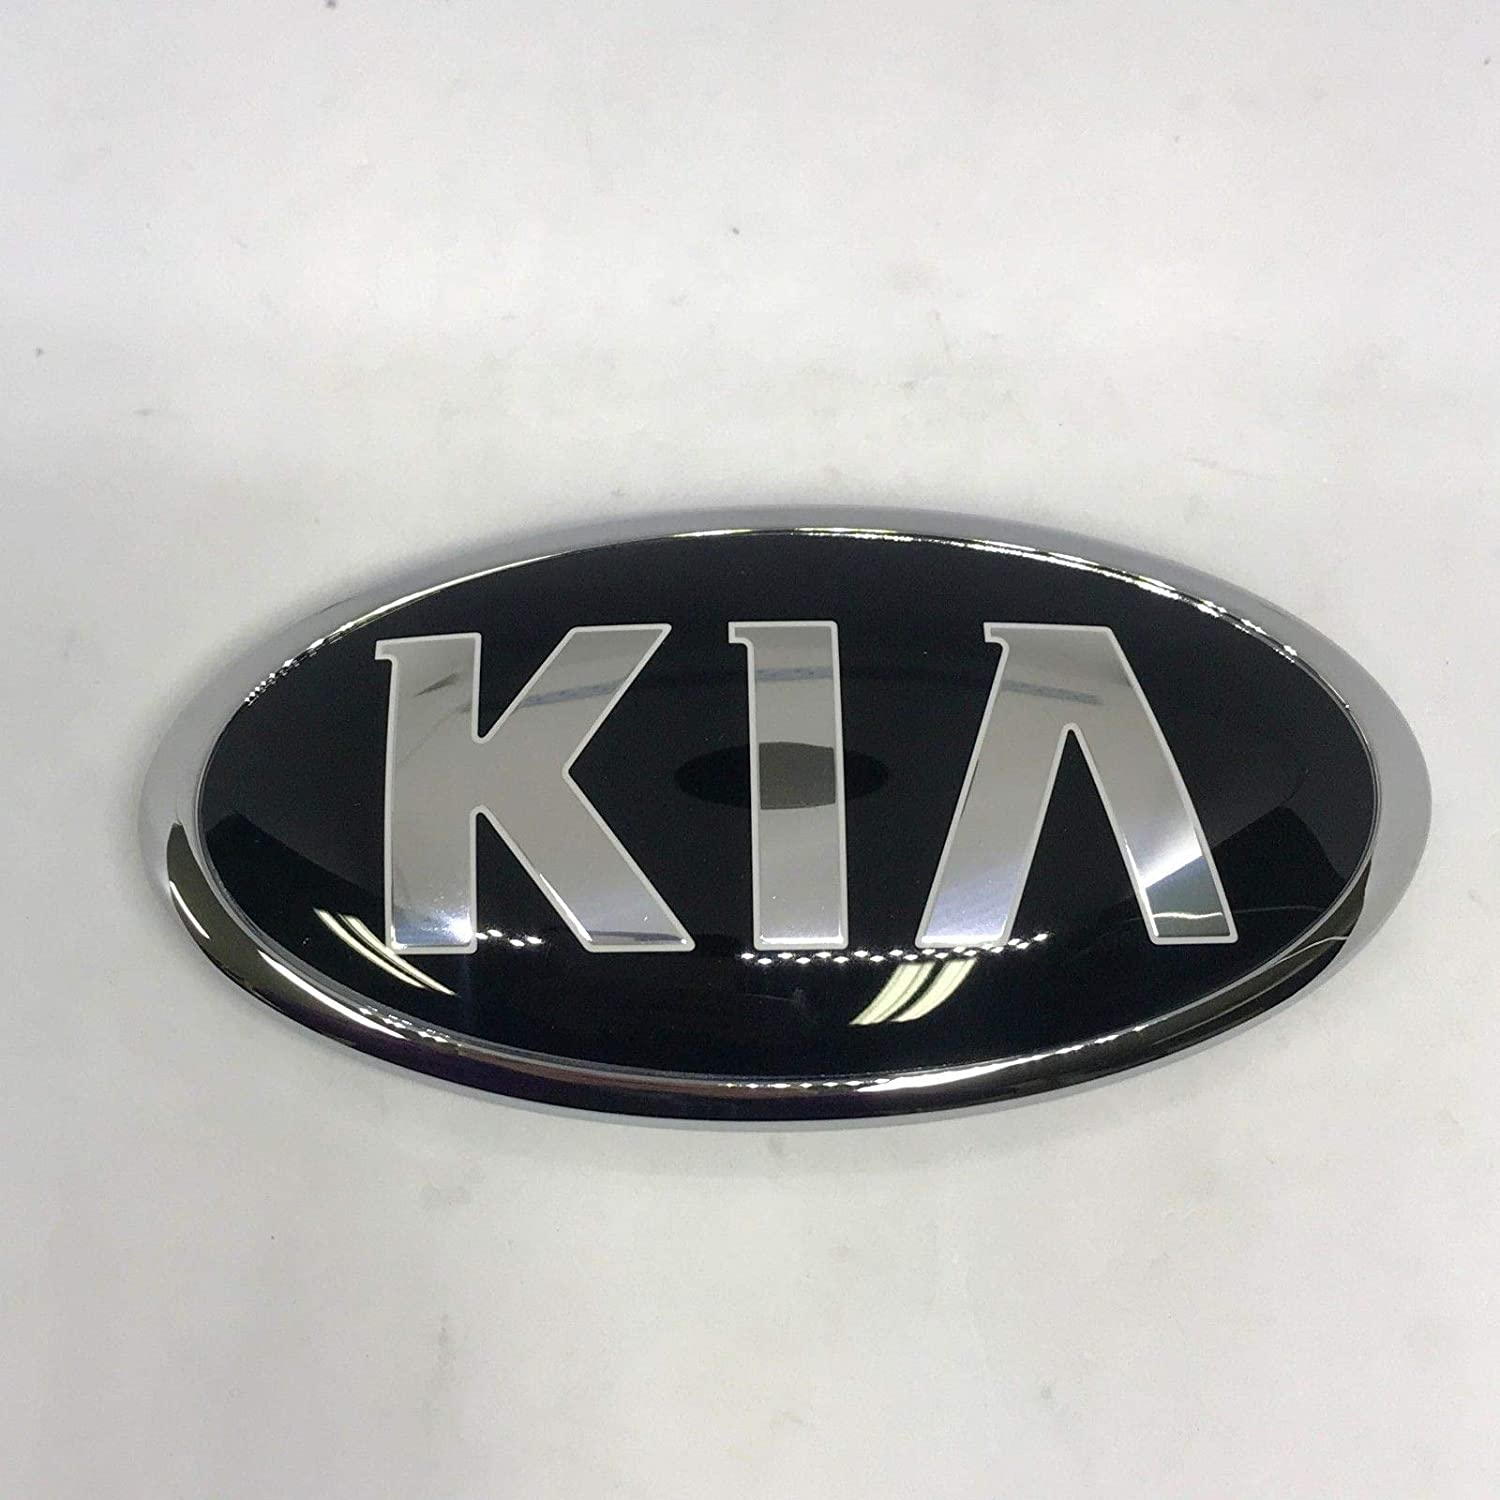 Kia Motors Genuine 863202P560 Front Hood Grill KIA Logo Emblem 1-pc For 2013 2014 Kia New Sorento